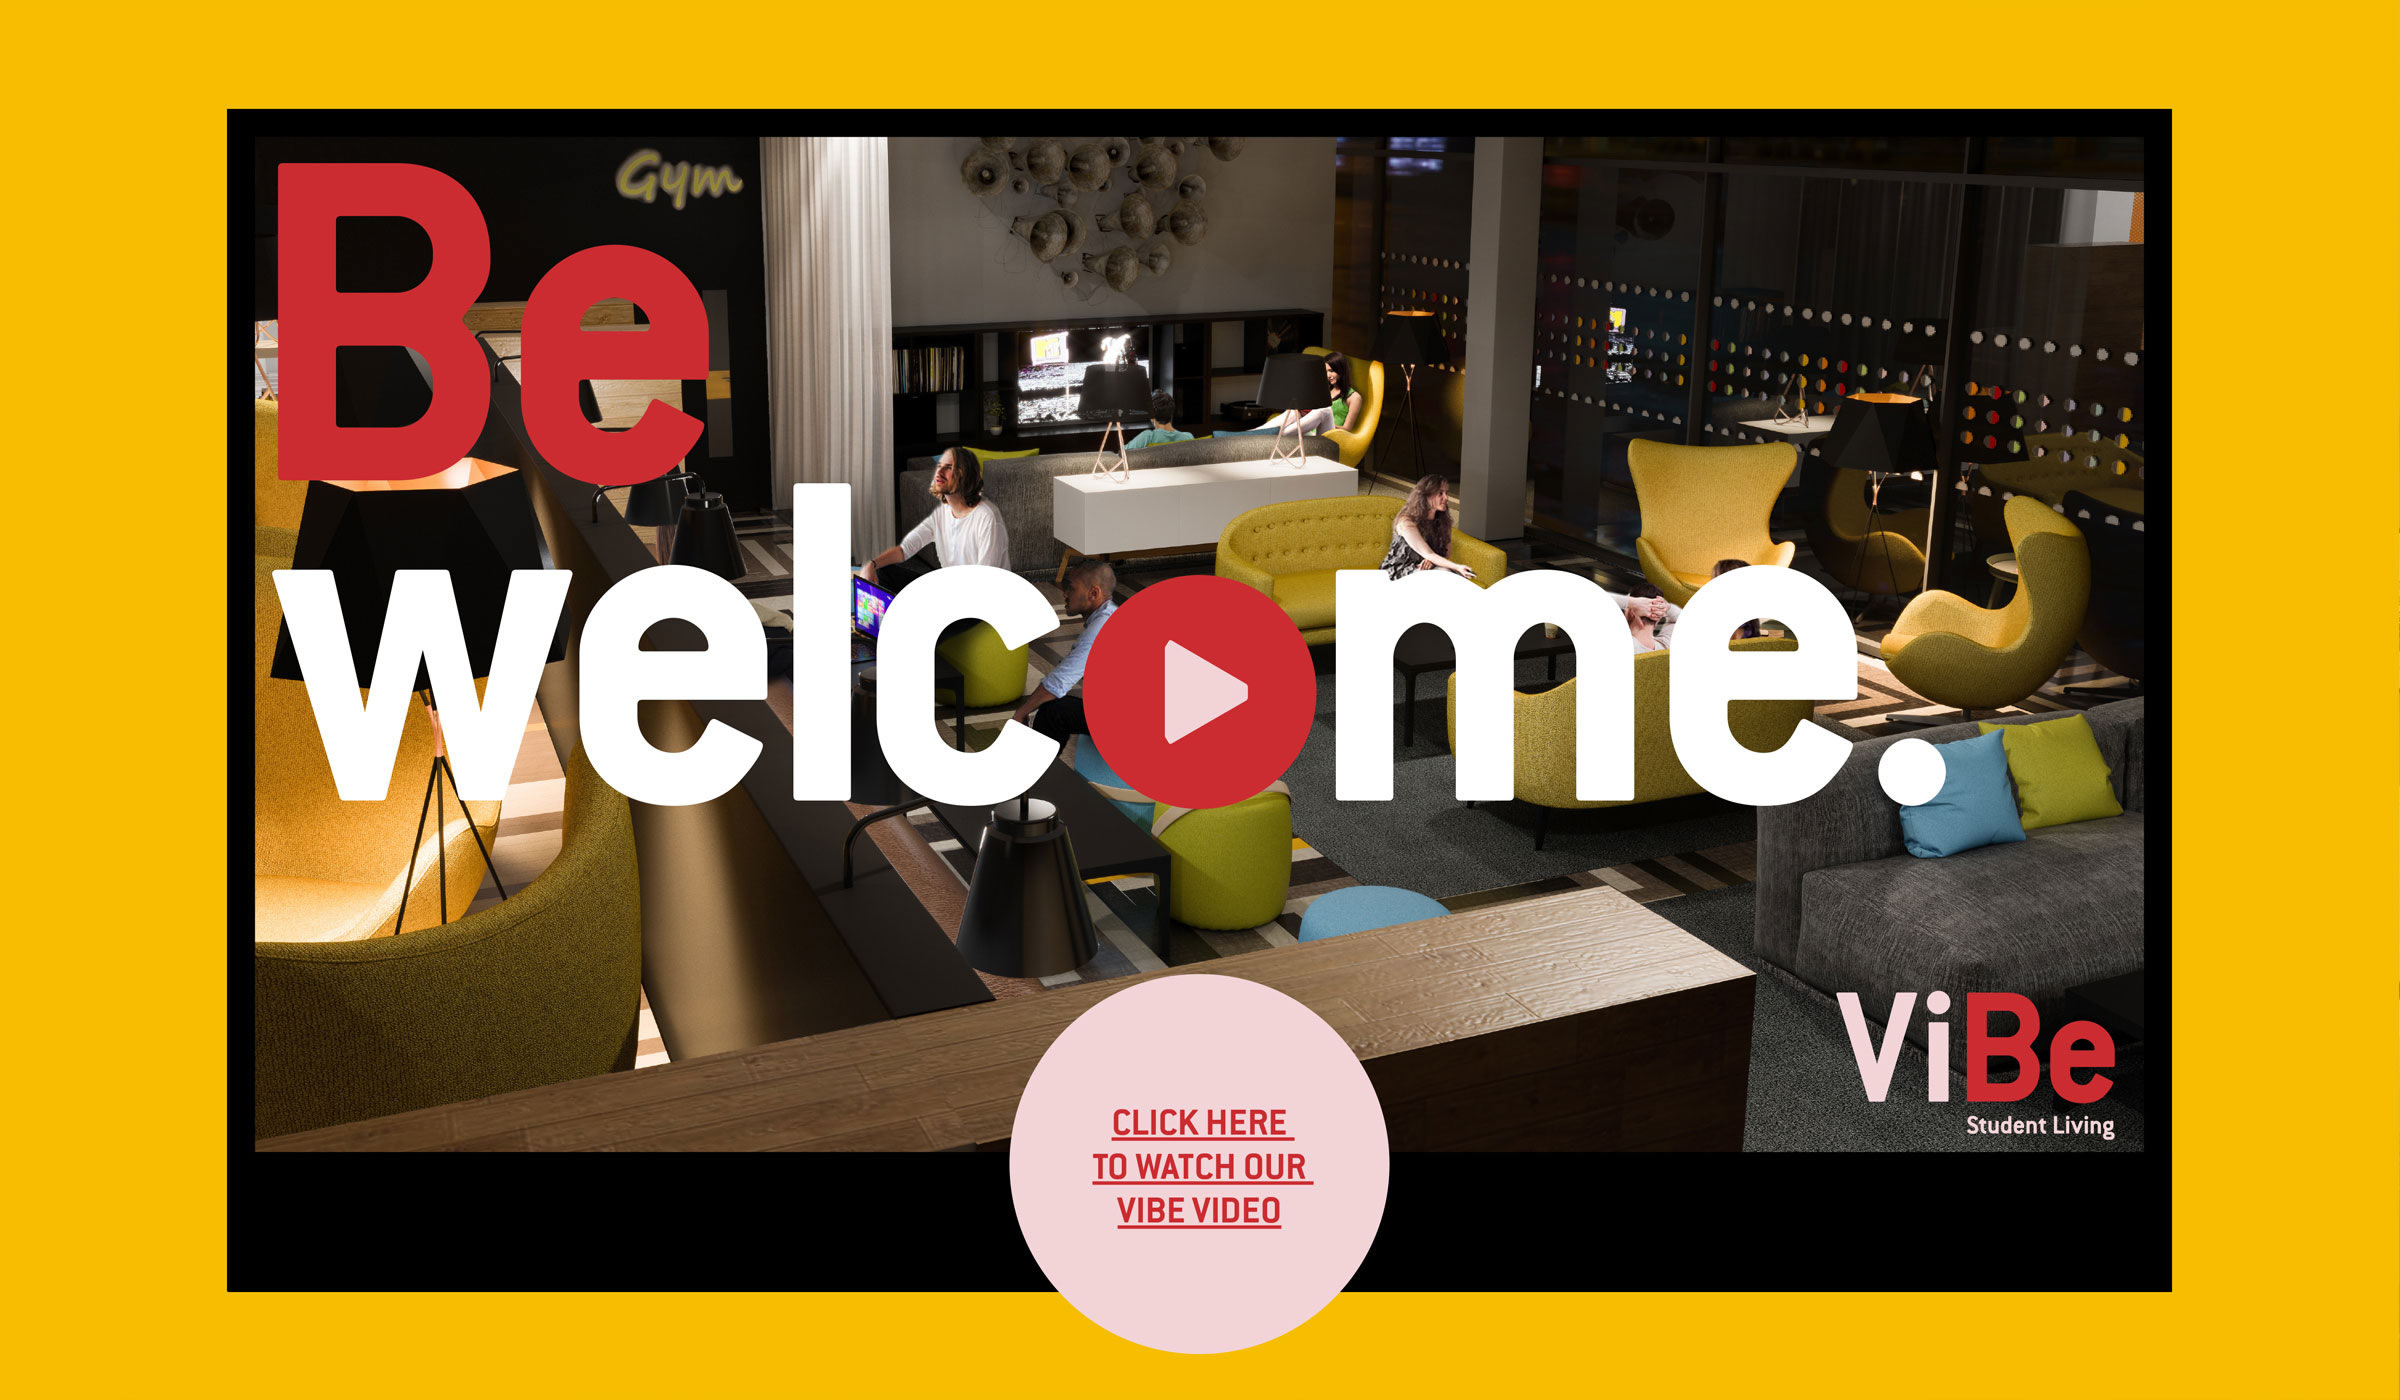 Opening September 2017 Vibe Student Living - click here to watch our video